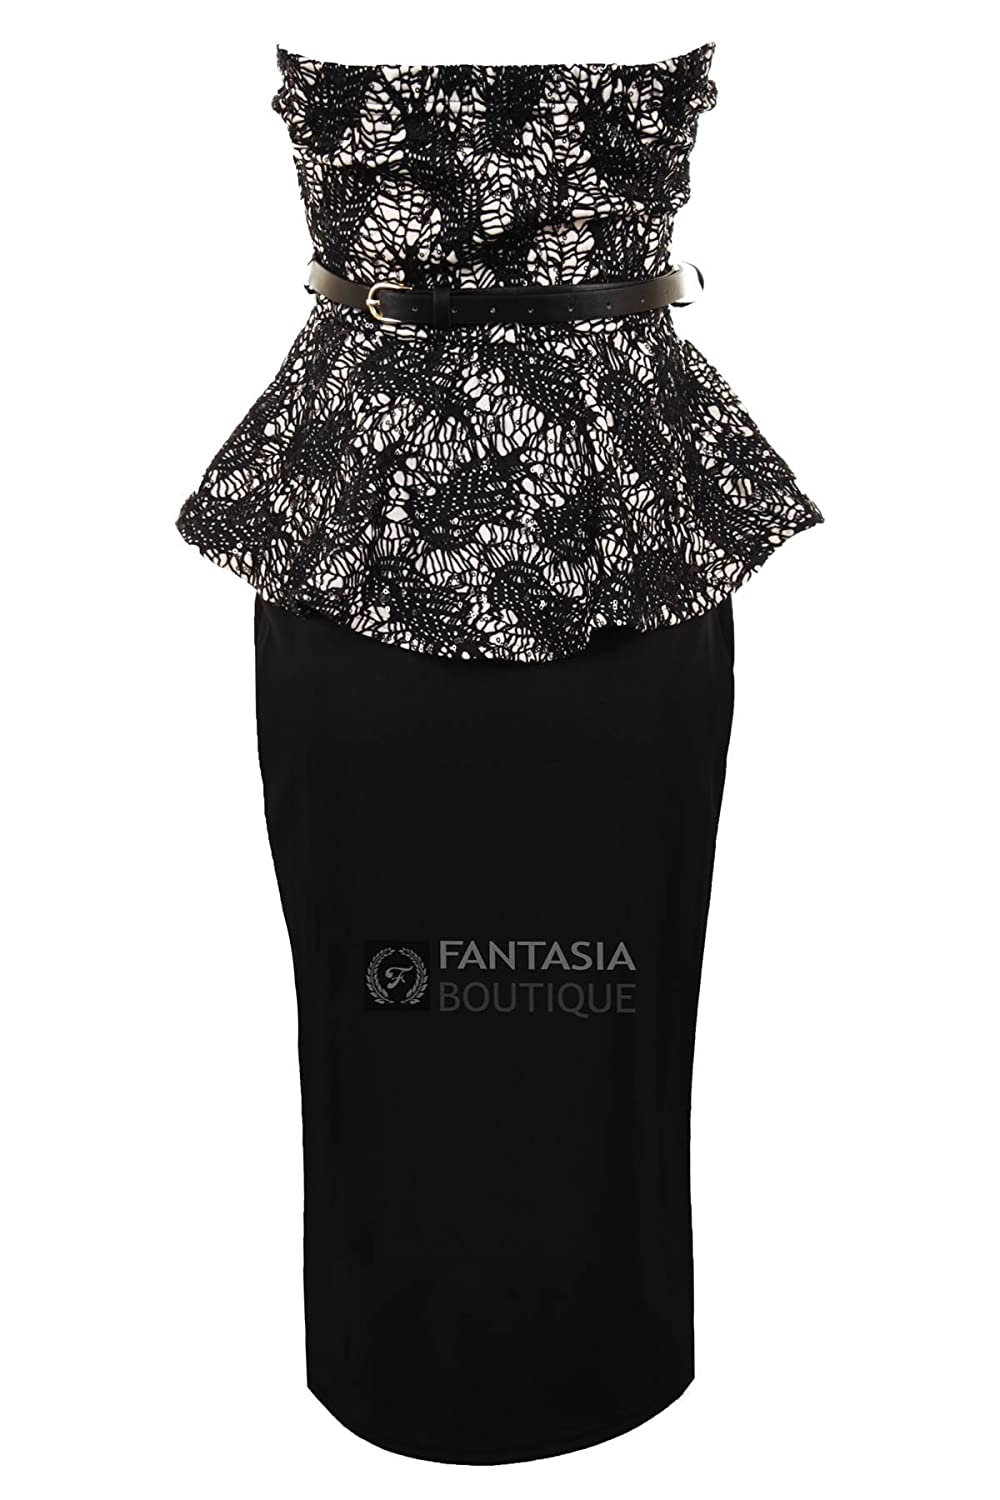 Fantasia Boutique ? Ladies Lace Sequin Boobtube Peplum Bodycon Skirt Knee Length Womens Dress